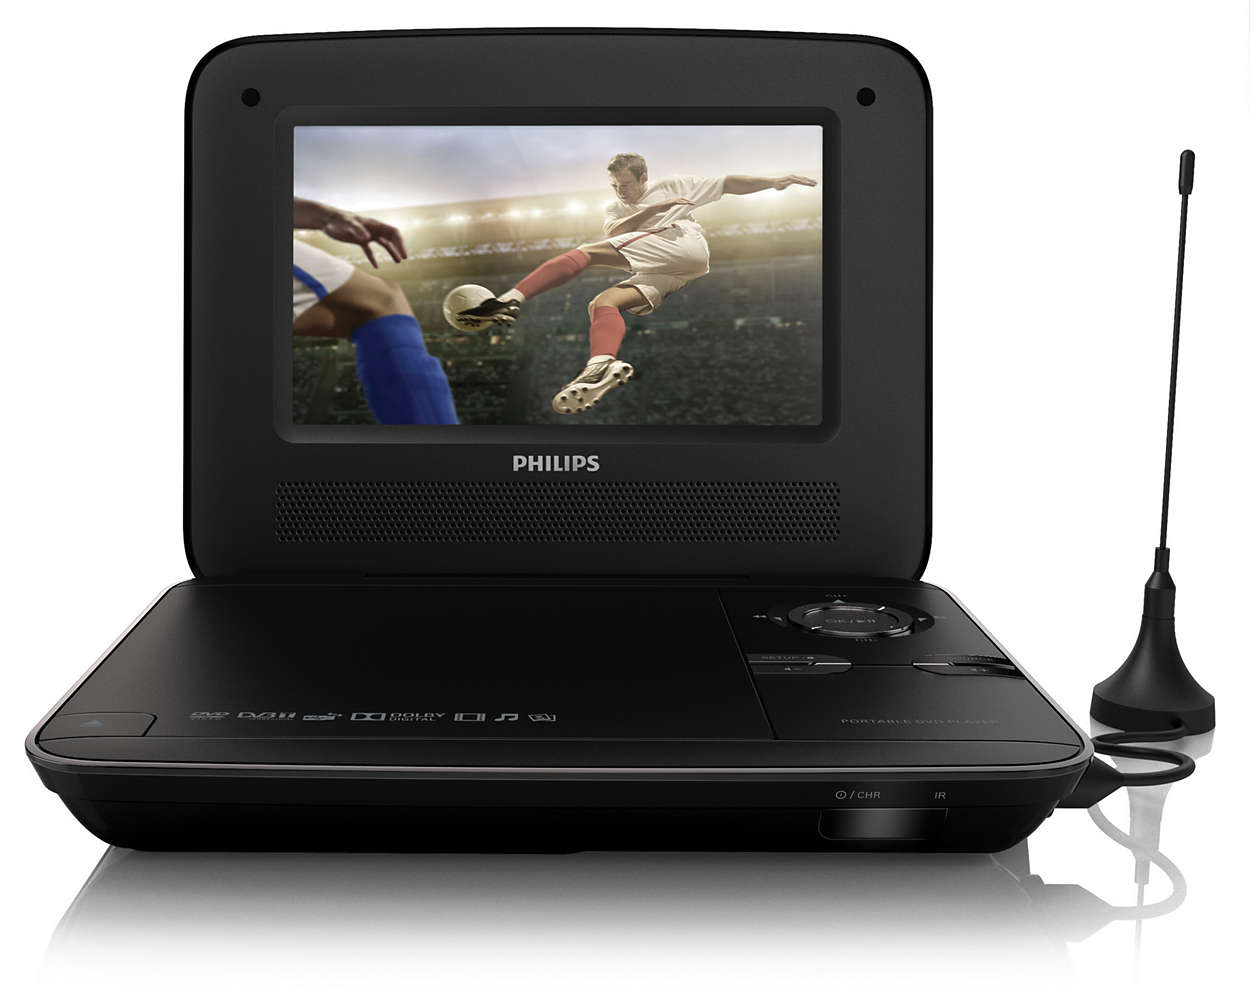 tragbarer dvd player pd7015 12 philips. Black Bedroom Furniture Sets. Home Design Ideas